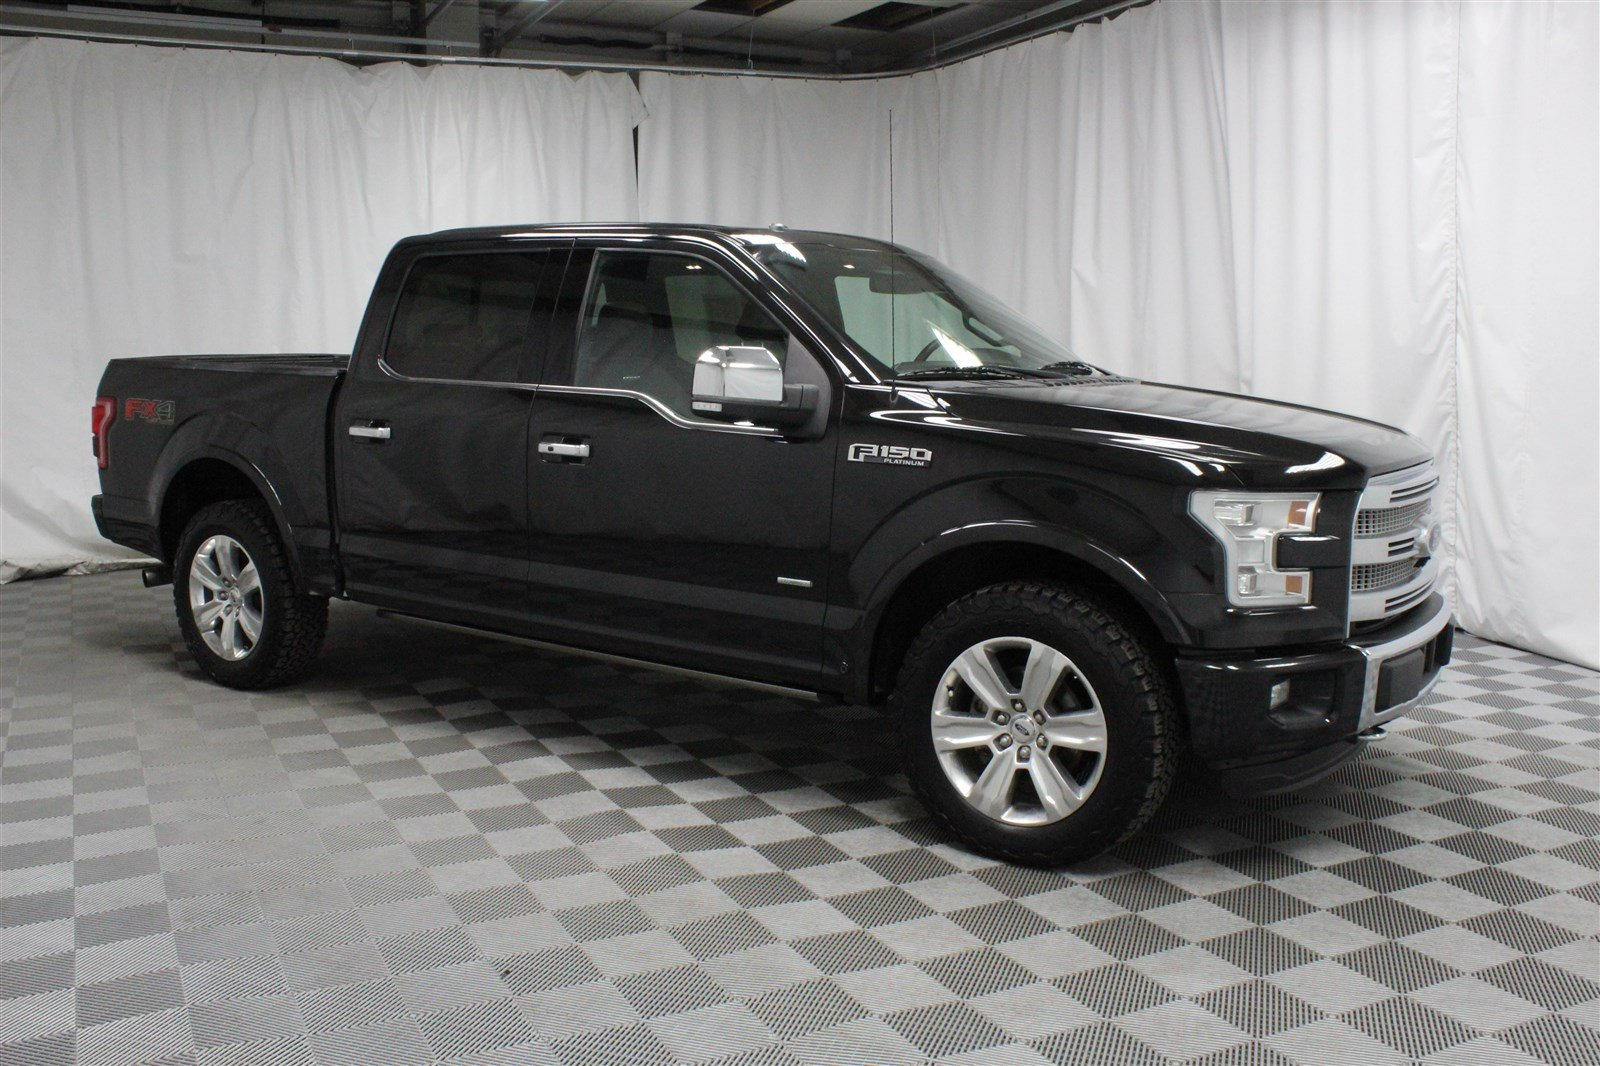 Pre-Owned 2015 Ford F-150 Crew Cab Platinum 4x4